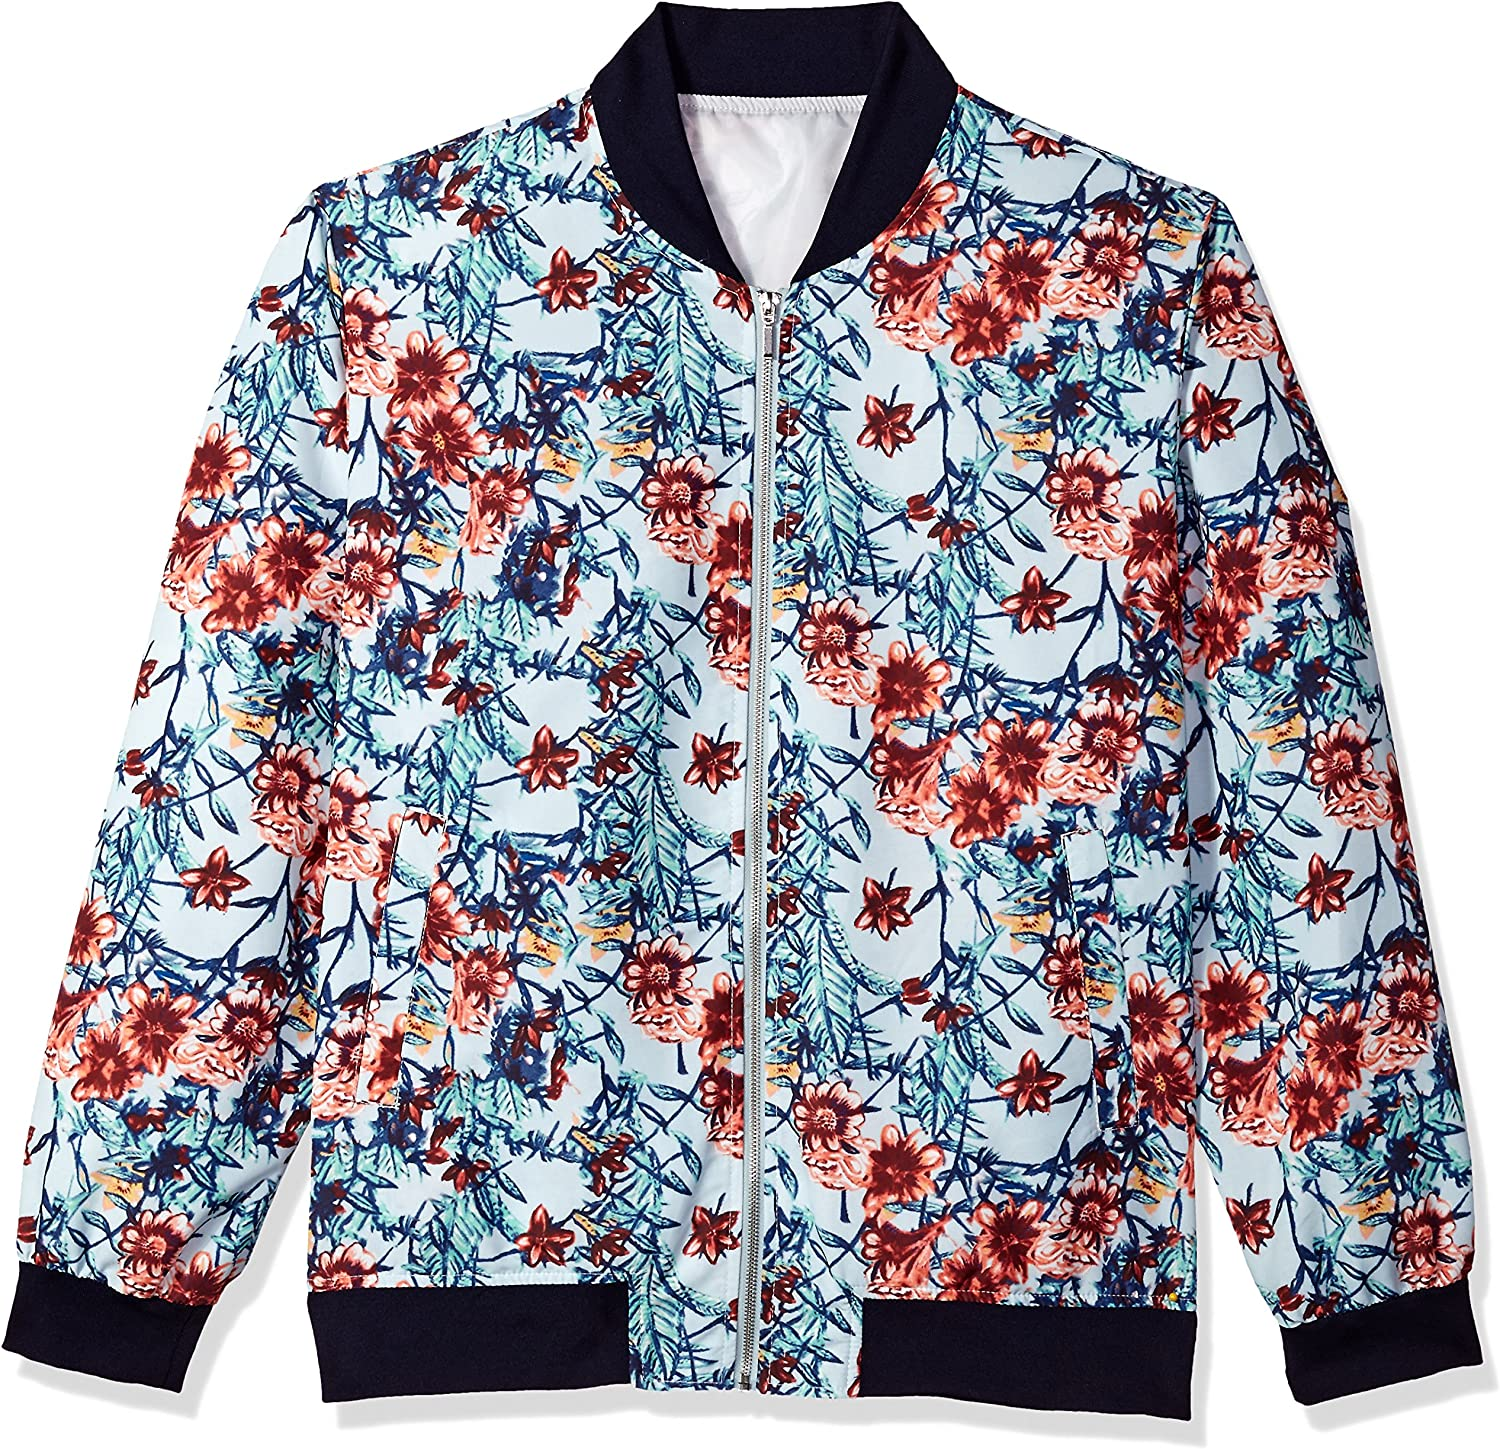 STACY ADAMS Men's Big and Tall Jacket Popular List price brand in the world Light Baseball Blue Floral